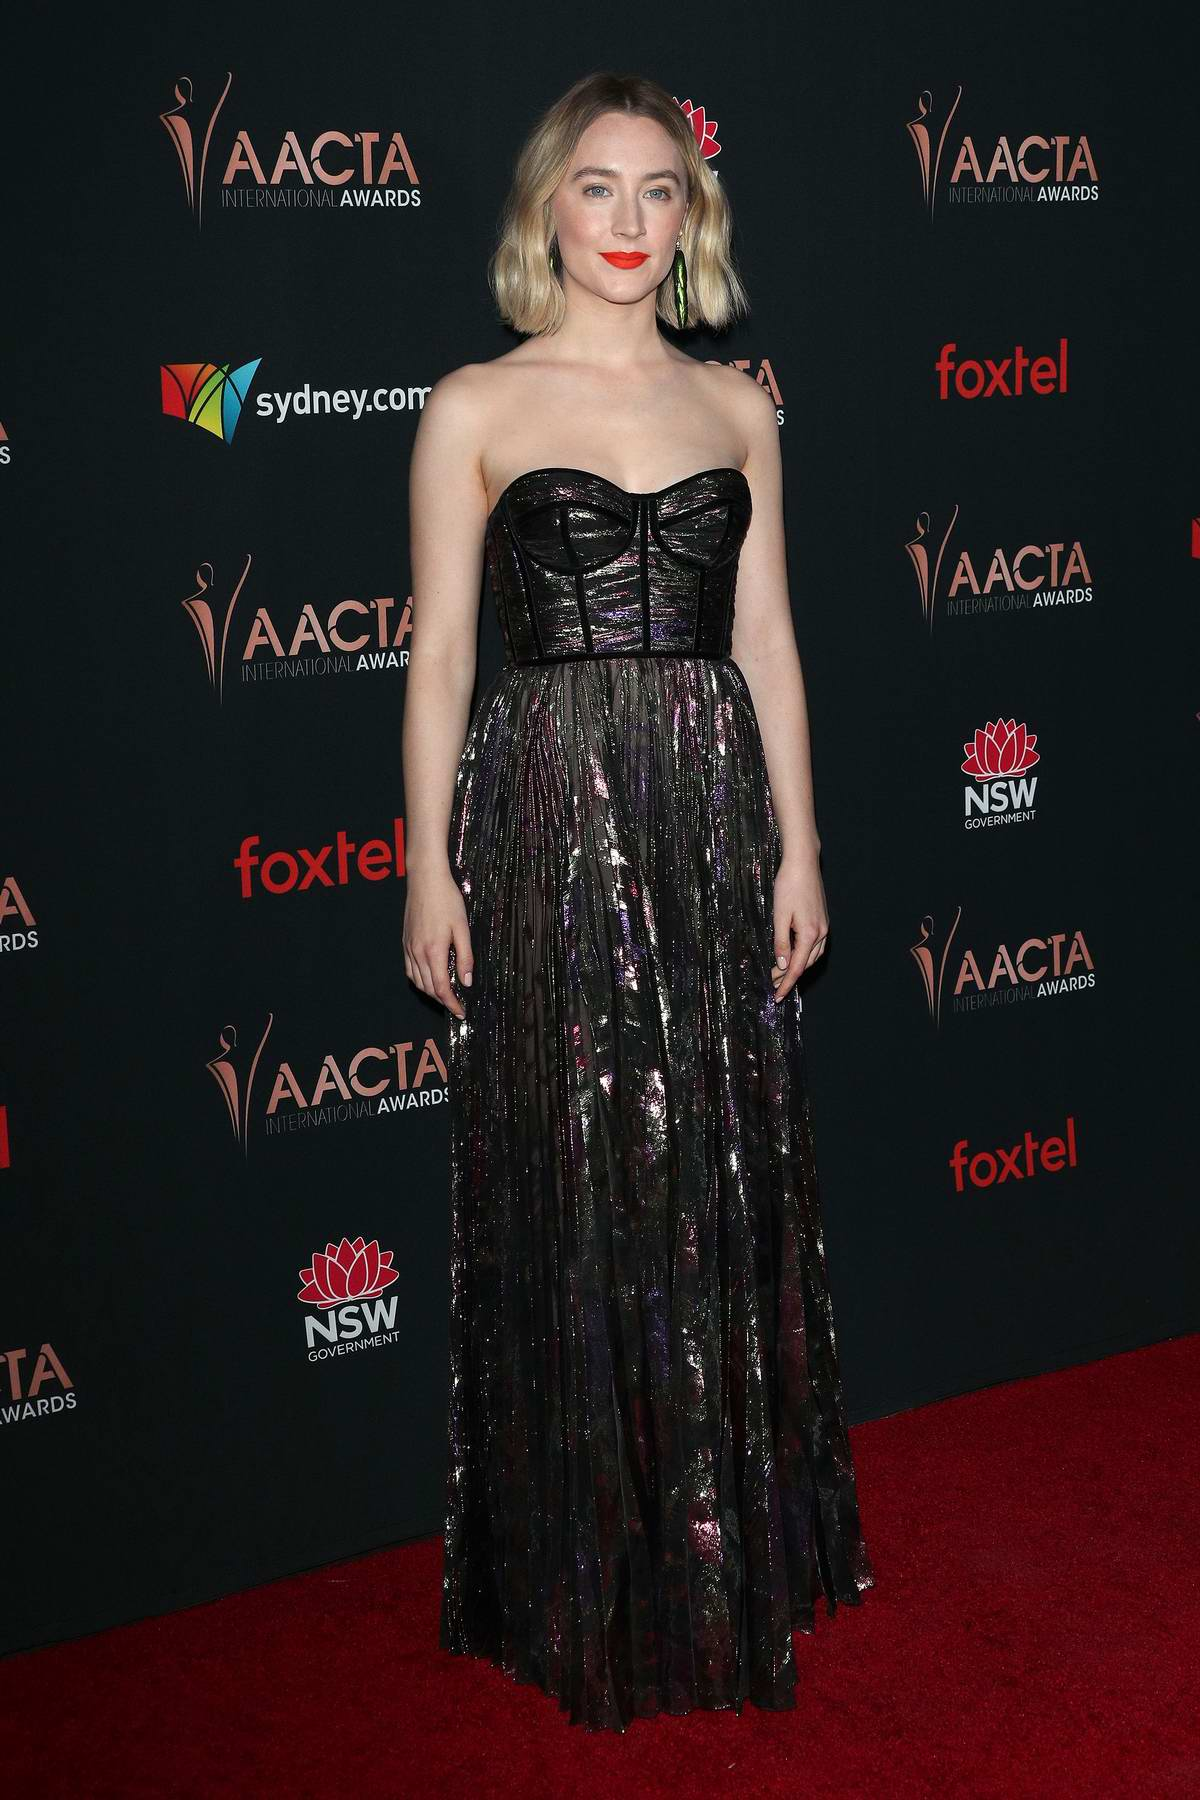 Saoirse Ronan attends the 9th Annual AACTA International Awards at the Mondrian Los Angeles